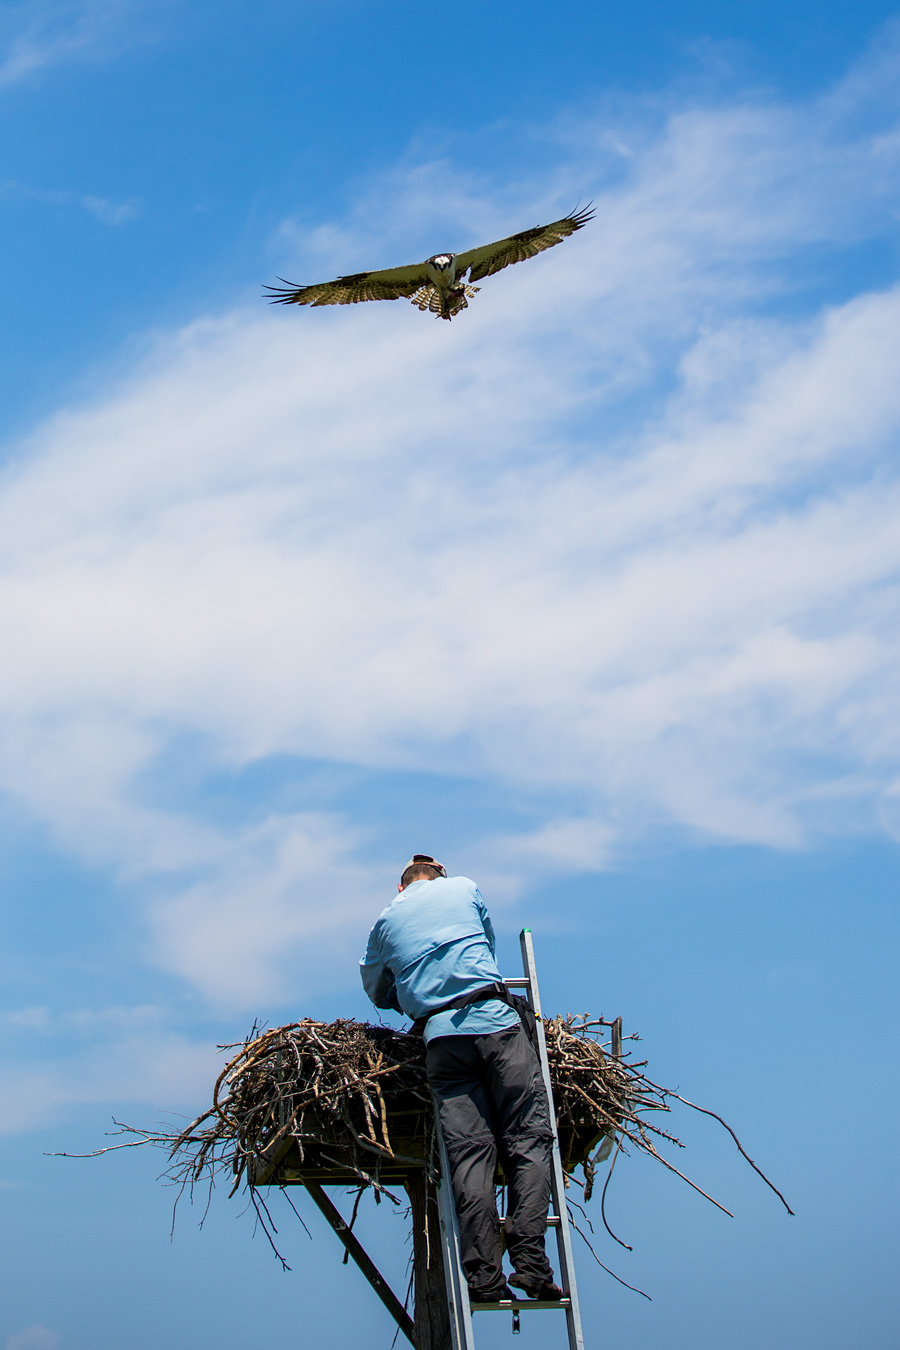 But when you first hear the WHOOOSH and feel the breeze of the Osprey grazing your precious head... well... you wonder how you got yourself into this crazy situation and hope you told your loved ones that you loved them